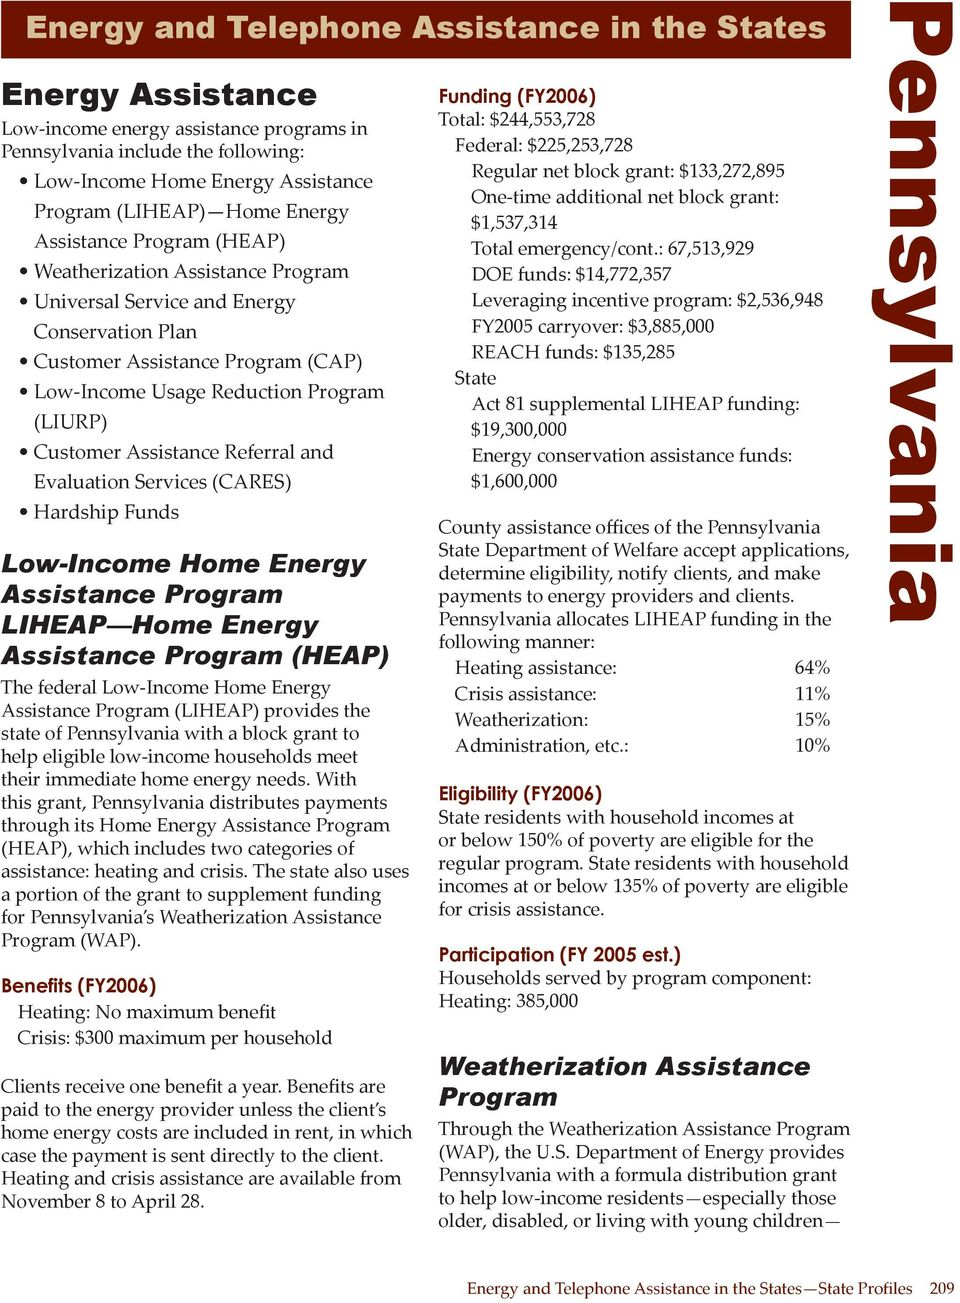 Low-Income Home Energy Assistance Program LIHEAP Home Energy Assistance Program (HEAP) The federal Low-Income Home Energy Assistance Program (LIHEAP) provides the state of with a block grant to help